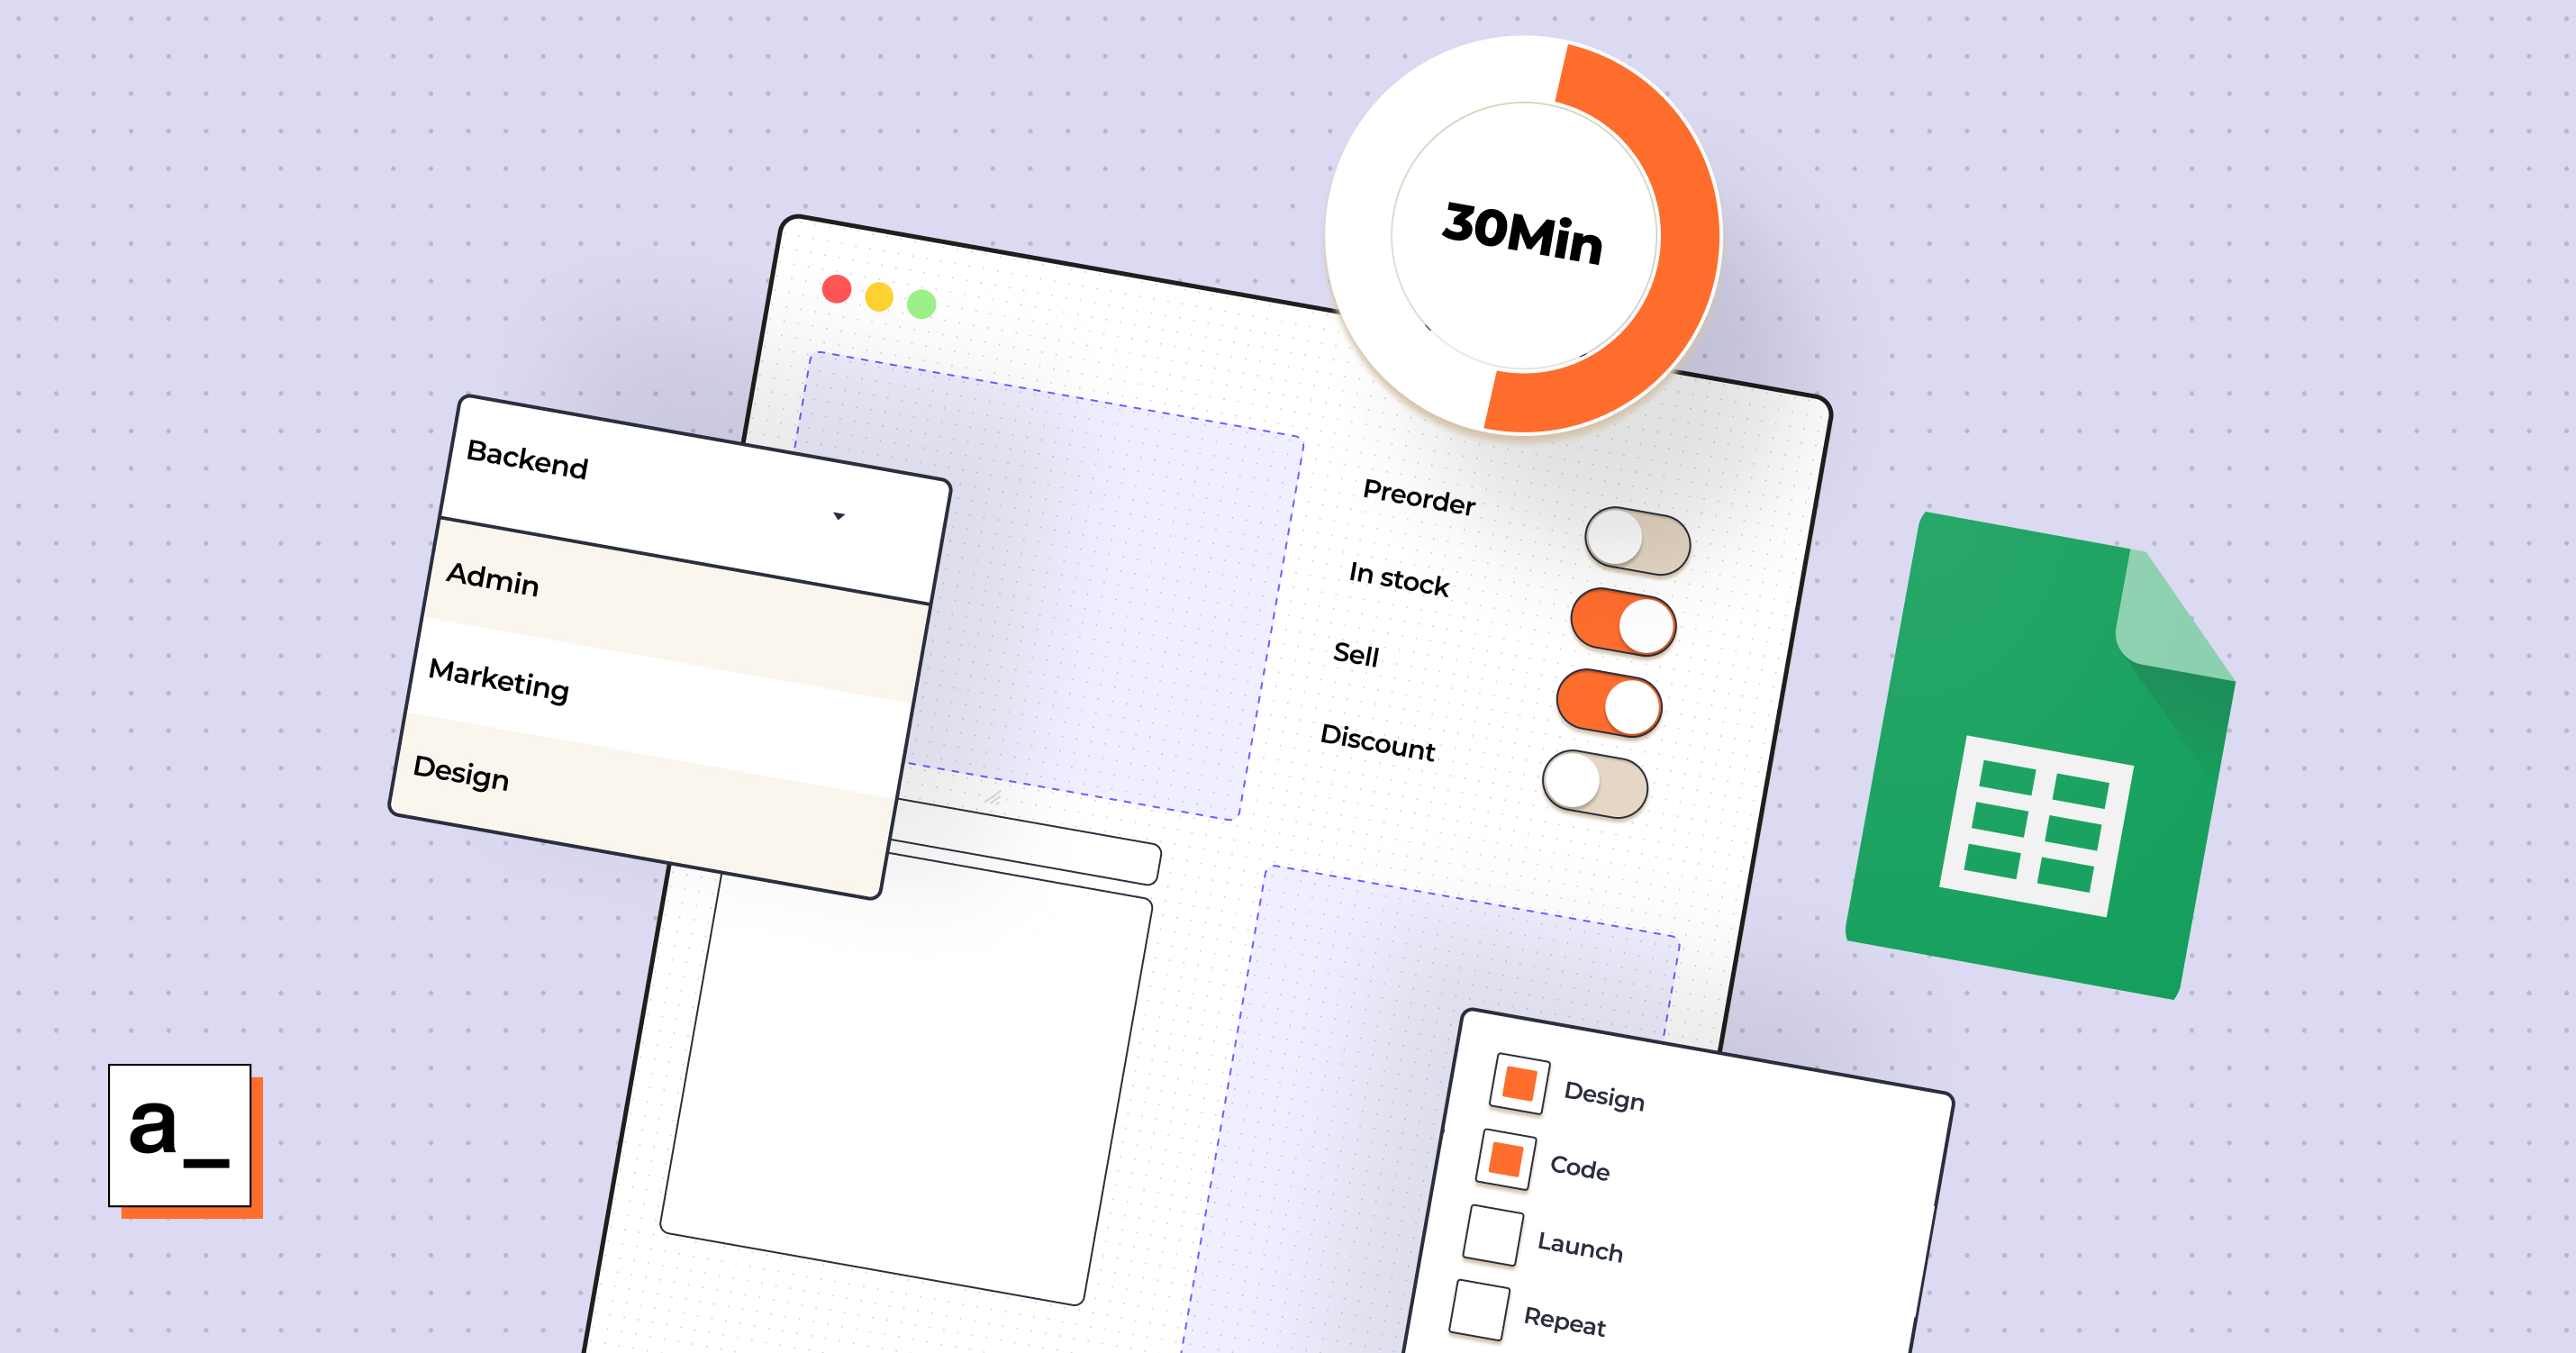 Engineering Diaries: How We Created a Google Sheets Integration for our Product